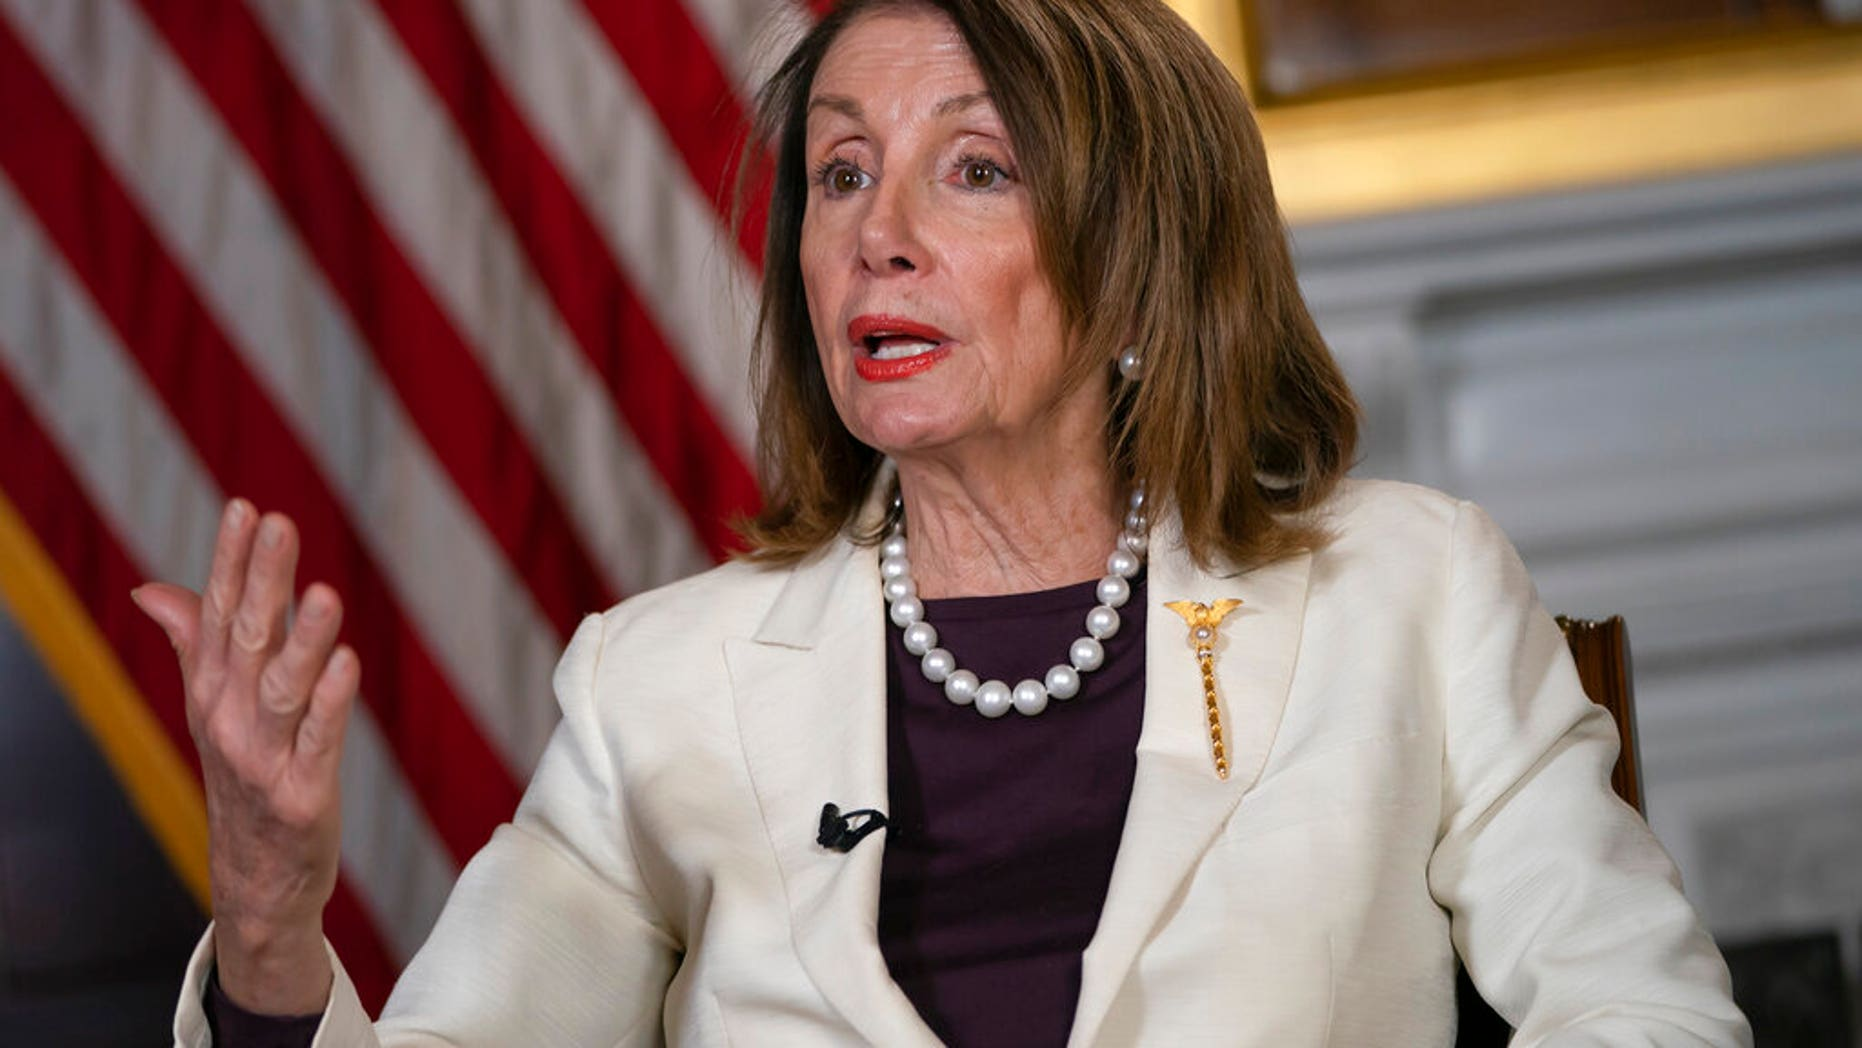 Speaker of the House Nancy Pelosi, D-Calif., Speaks during an interview with the Associated Press in Washington, DC, on Wednesday, April 10, 2019. (AP Photo / J. Scott Applewhite) [1[ads1]9659002 Speaker of the House Nancy Pelosi, D-Calif., Speaks during an interview with The Associated Press in Washington, DC, Wednesday, April 10, 2019. (AP Photo / J. Scott Applewhite) <!----></p> </div> </div> </div> <p class=